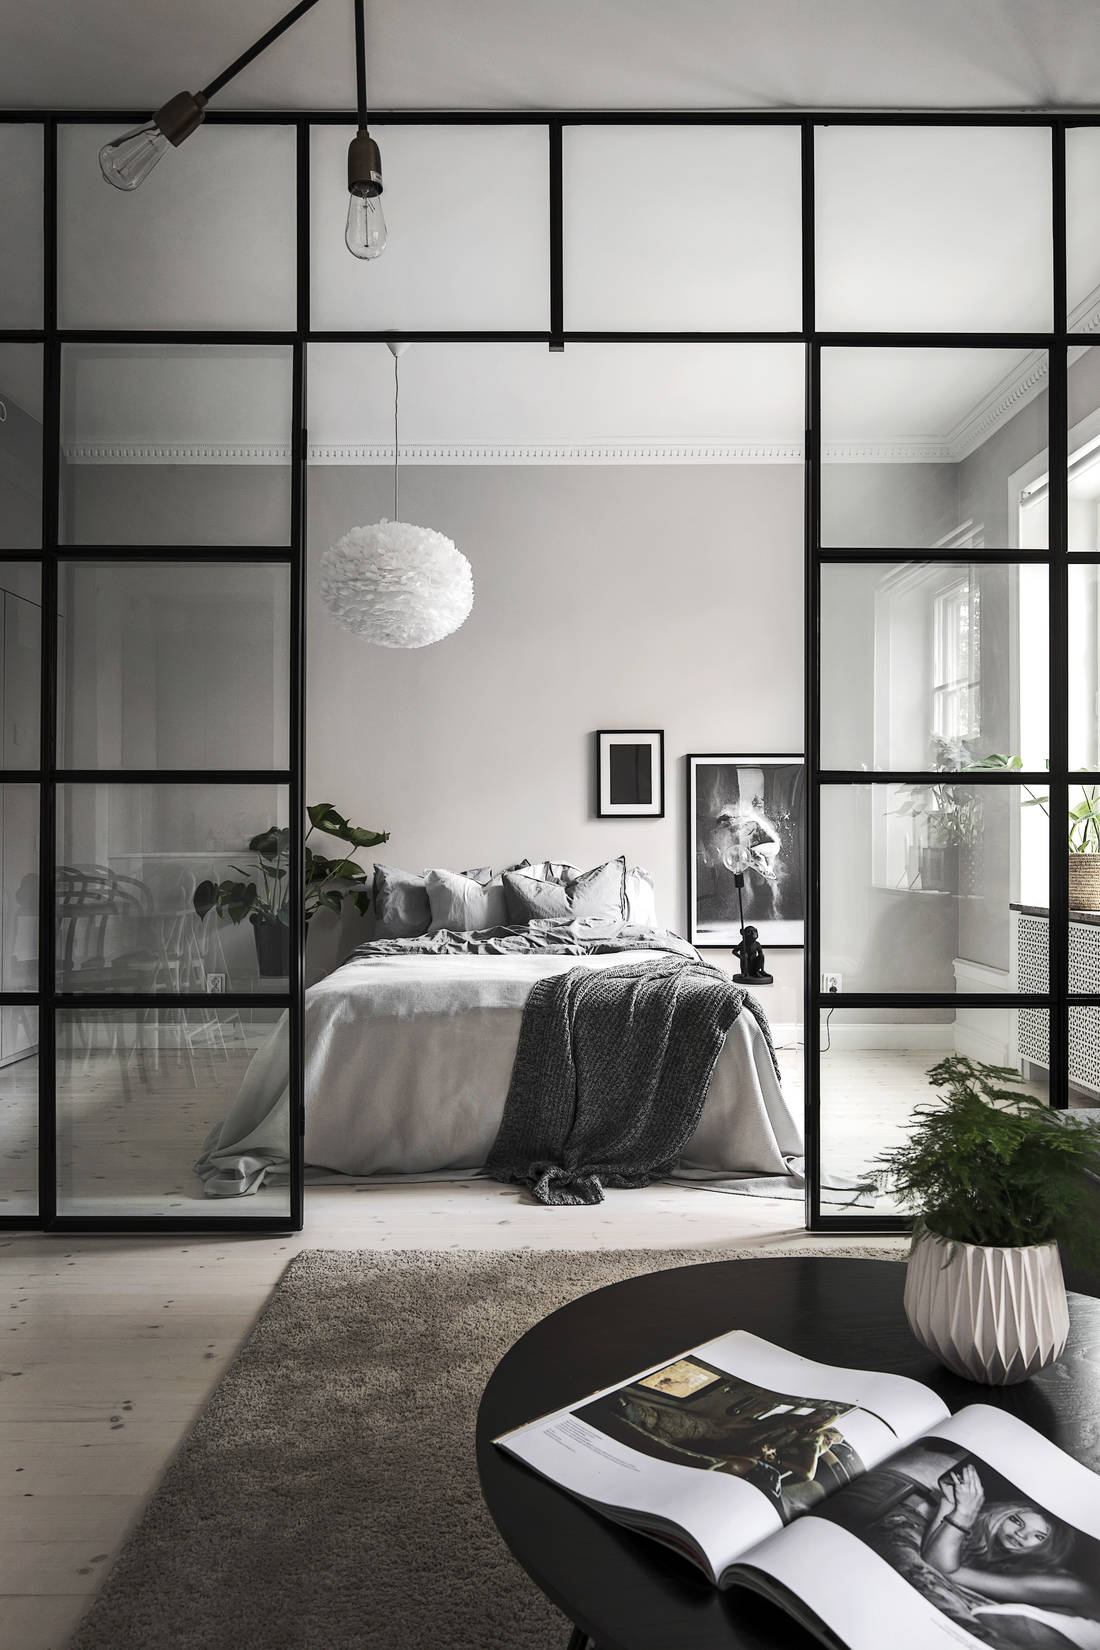 Kitchen, Living Room And Bedroom In One   Via Coco Lapine Design Blog ...